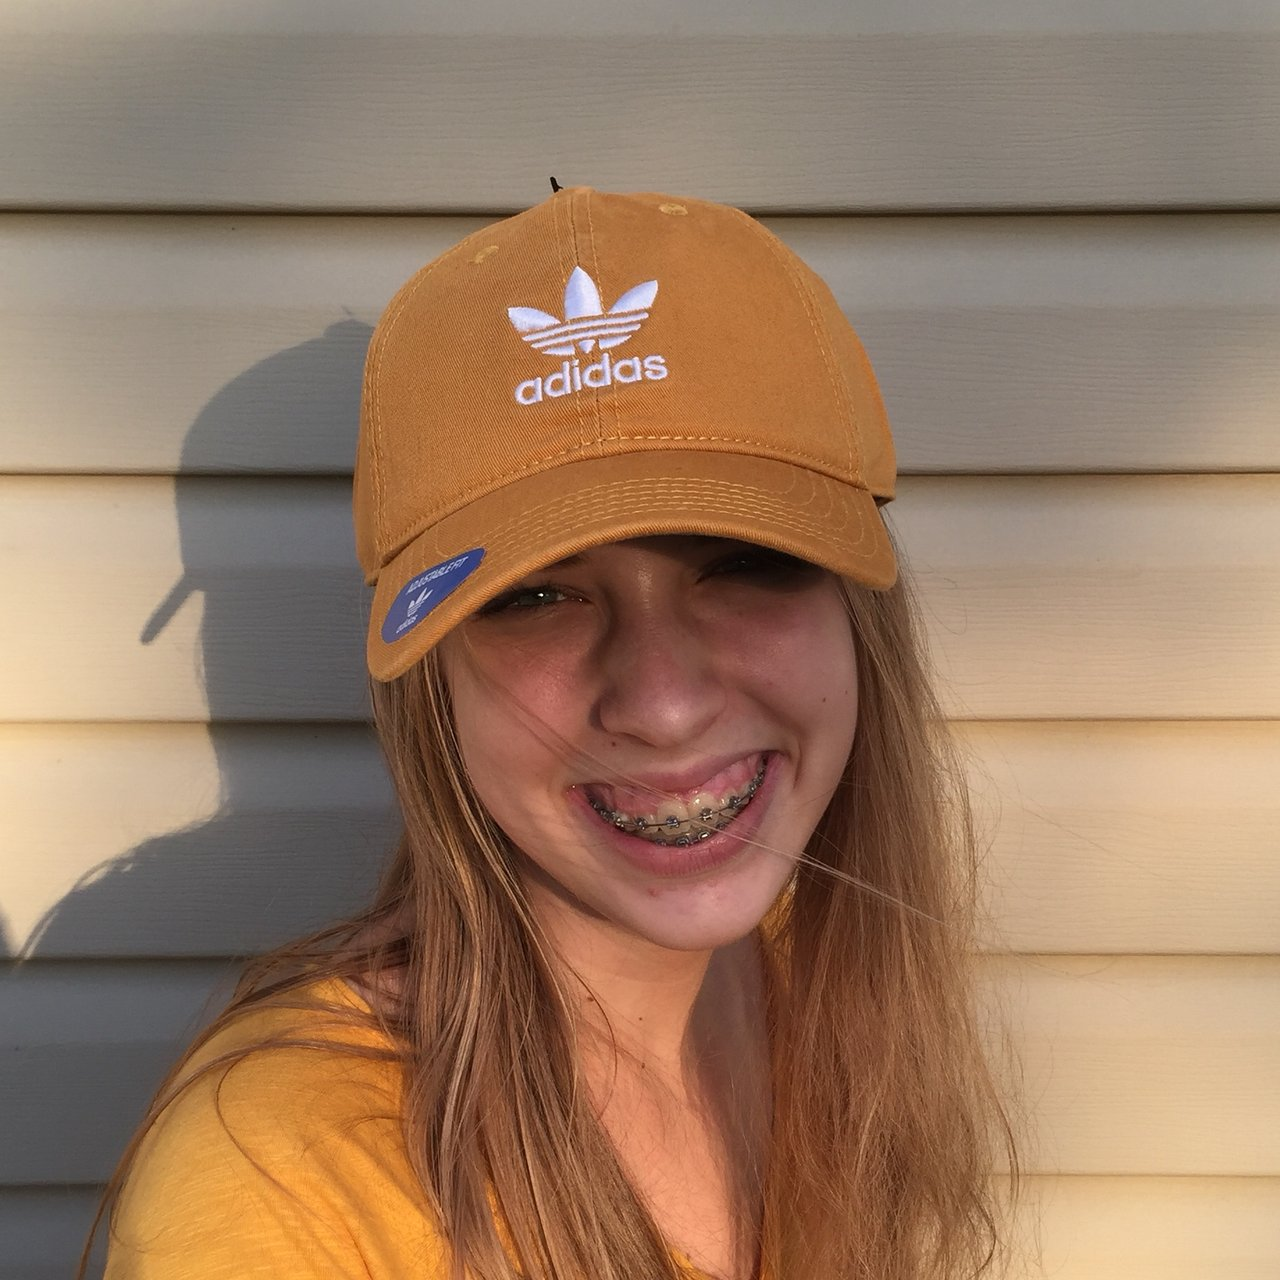 GORGEOUS AESTHETIC MUSTARD YELLOW ADIDAS ORIGINALS HAT 54d877e3b49